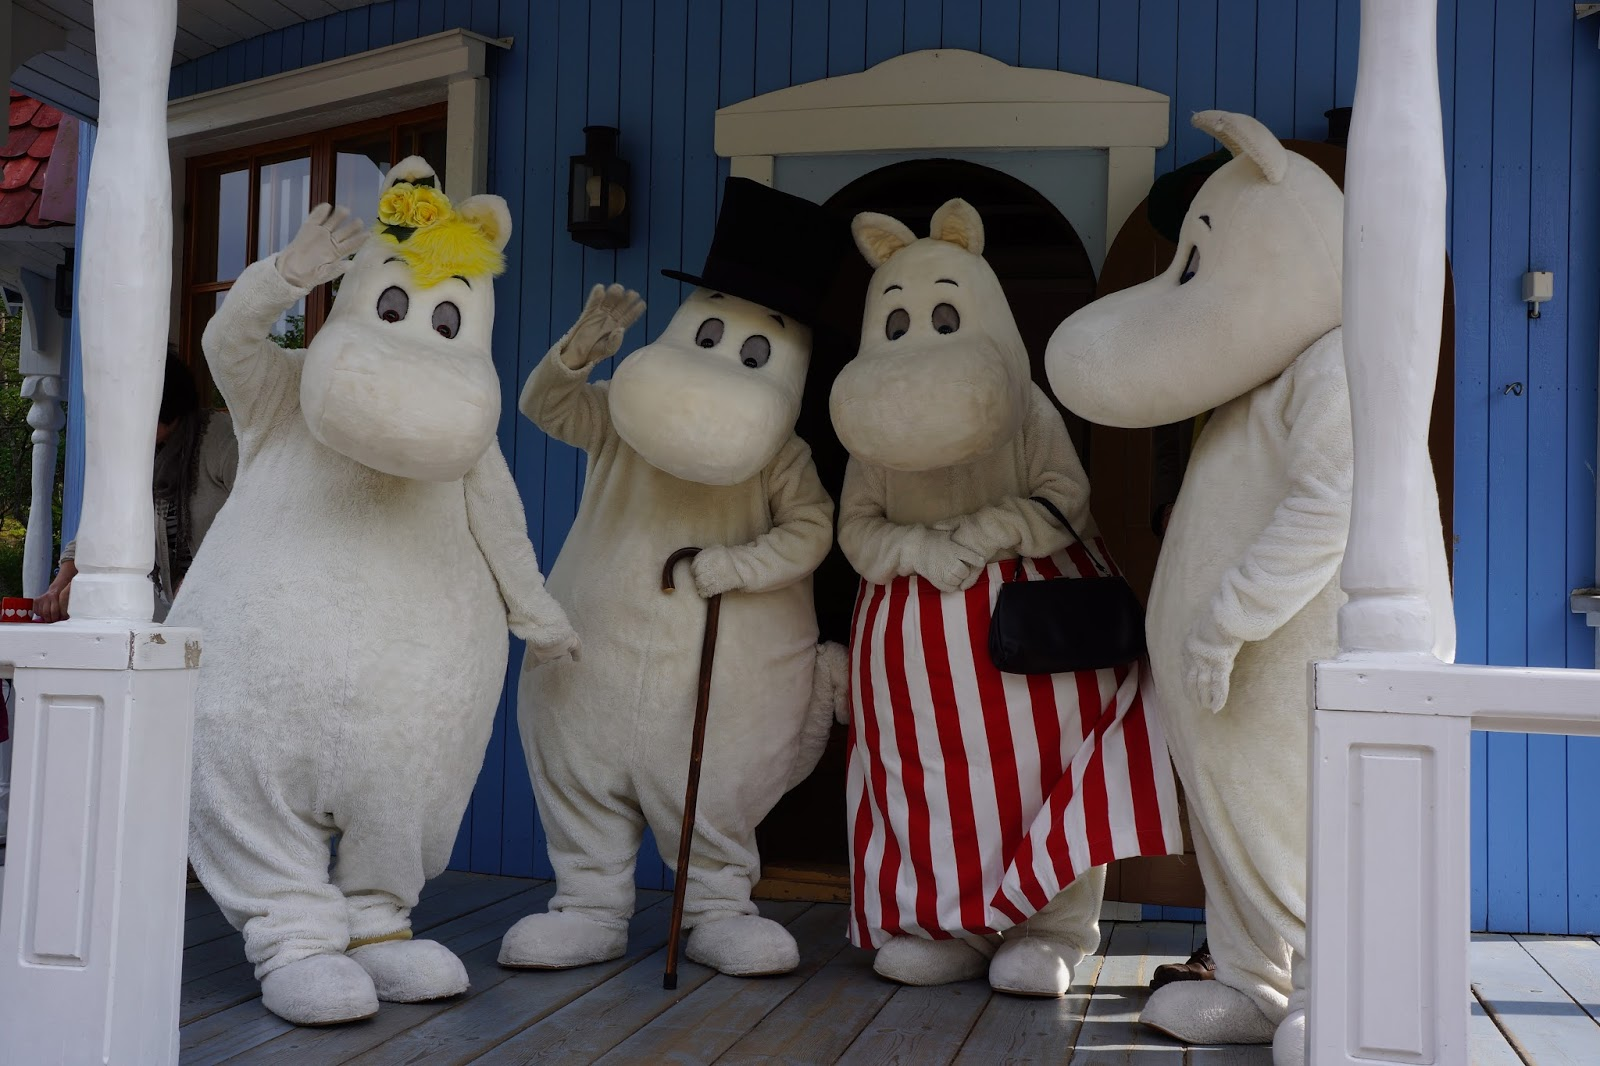 moomin family waving at you at moomin house